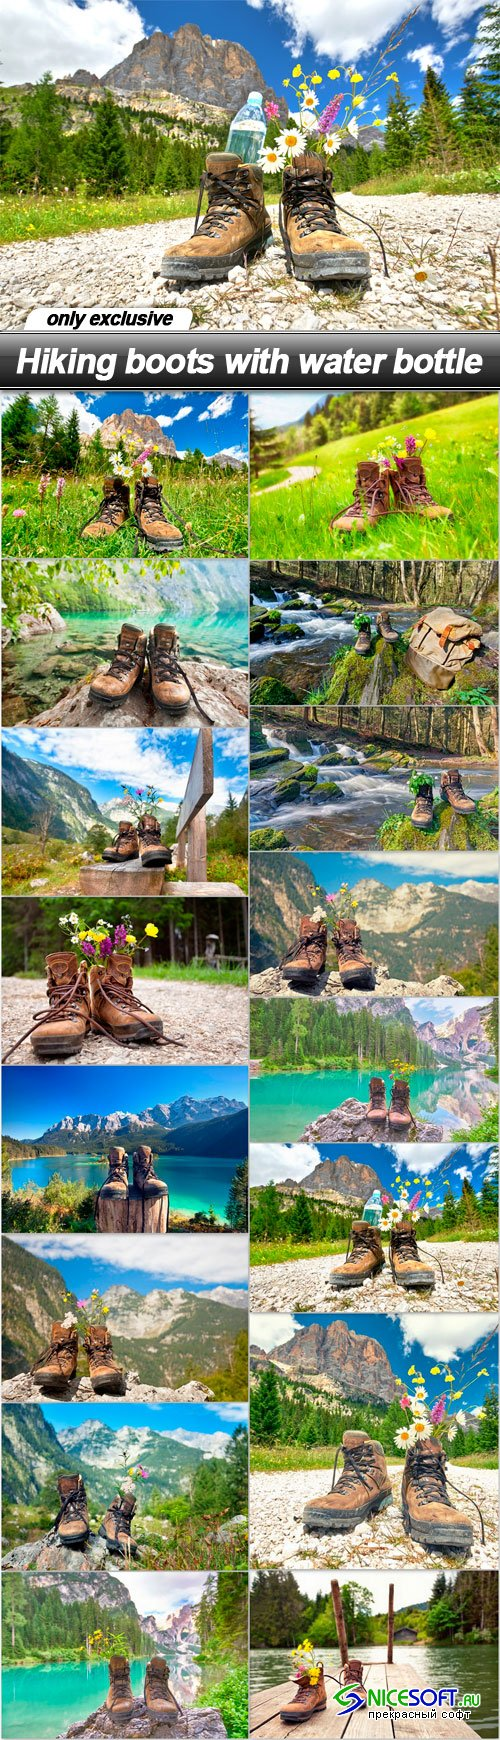 Hiking boots with water bottle